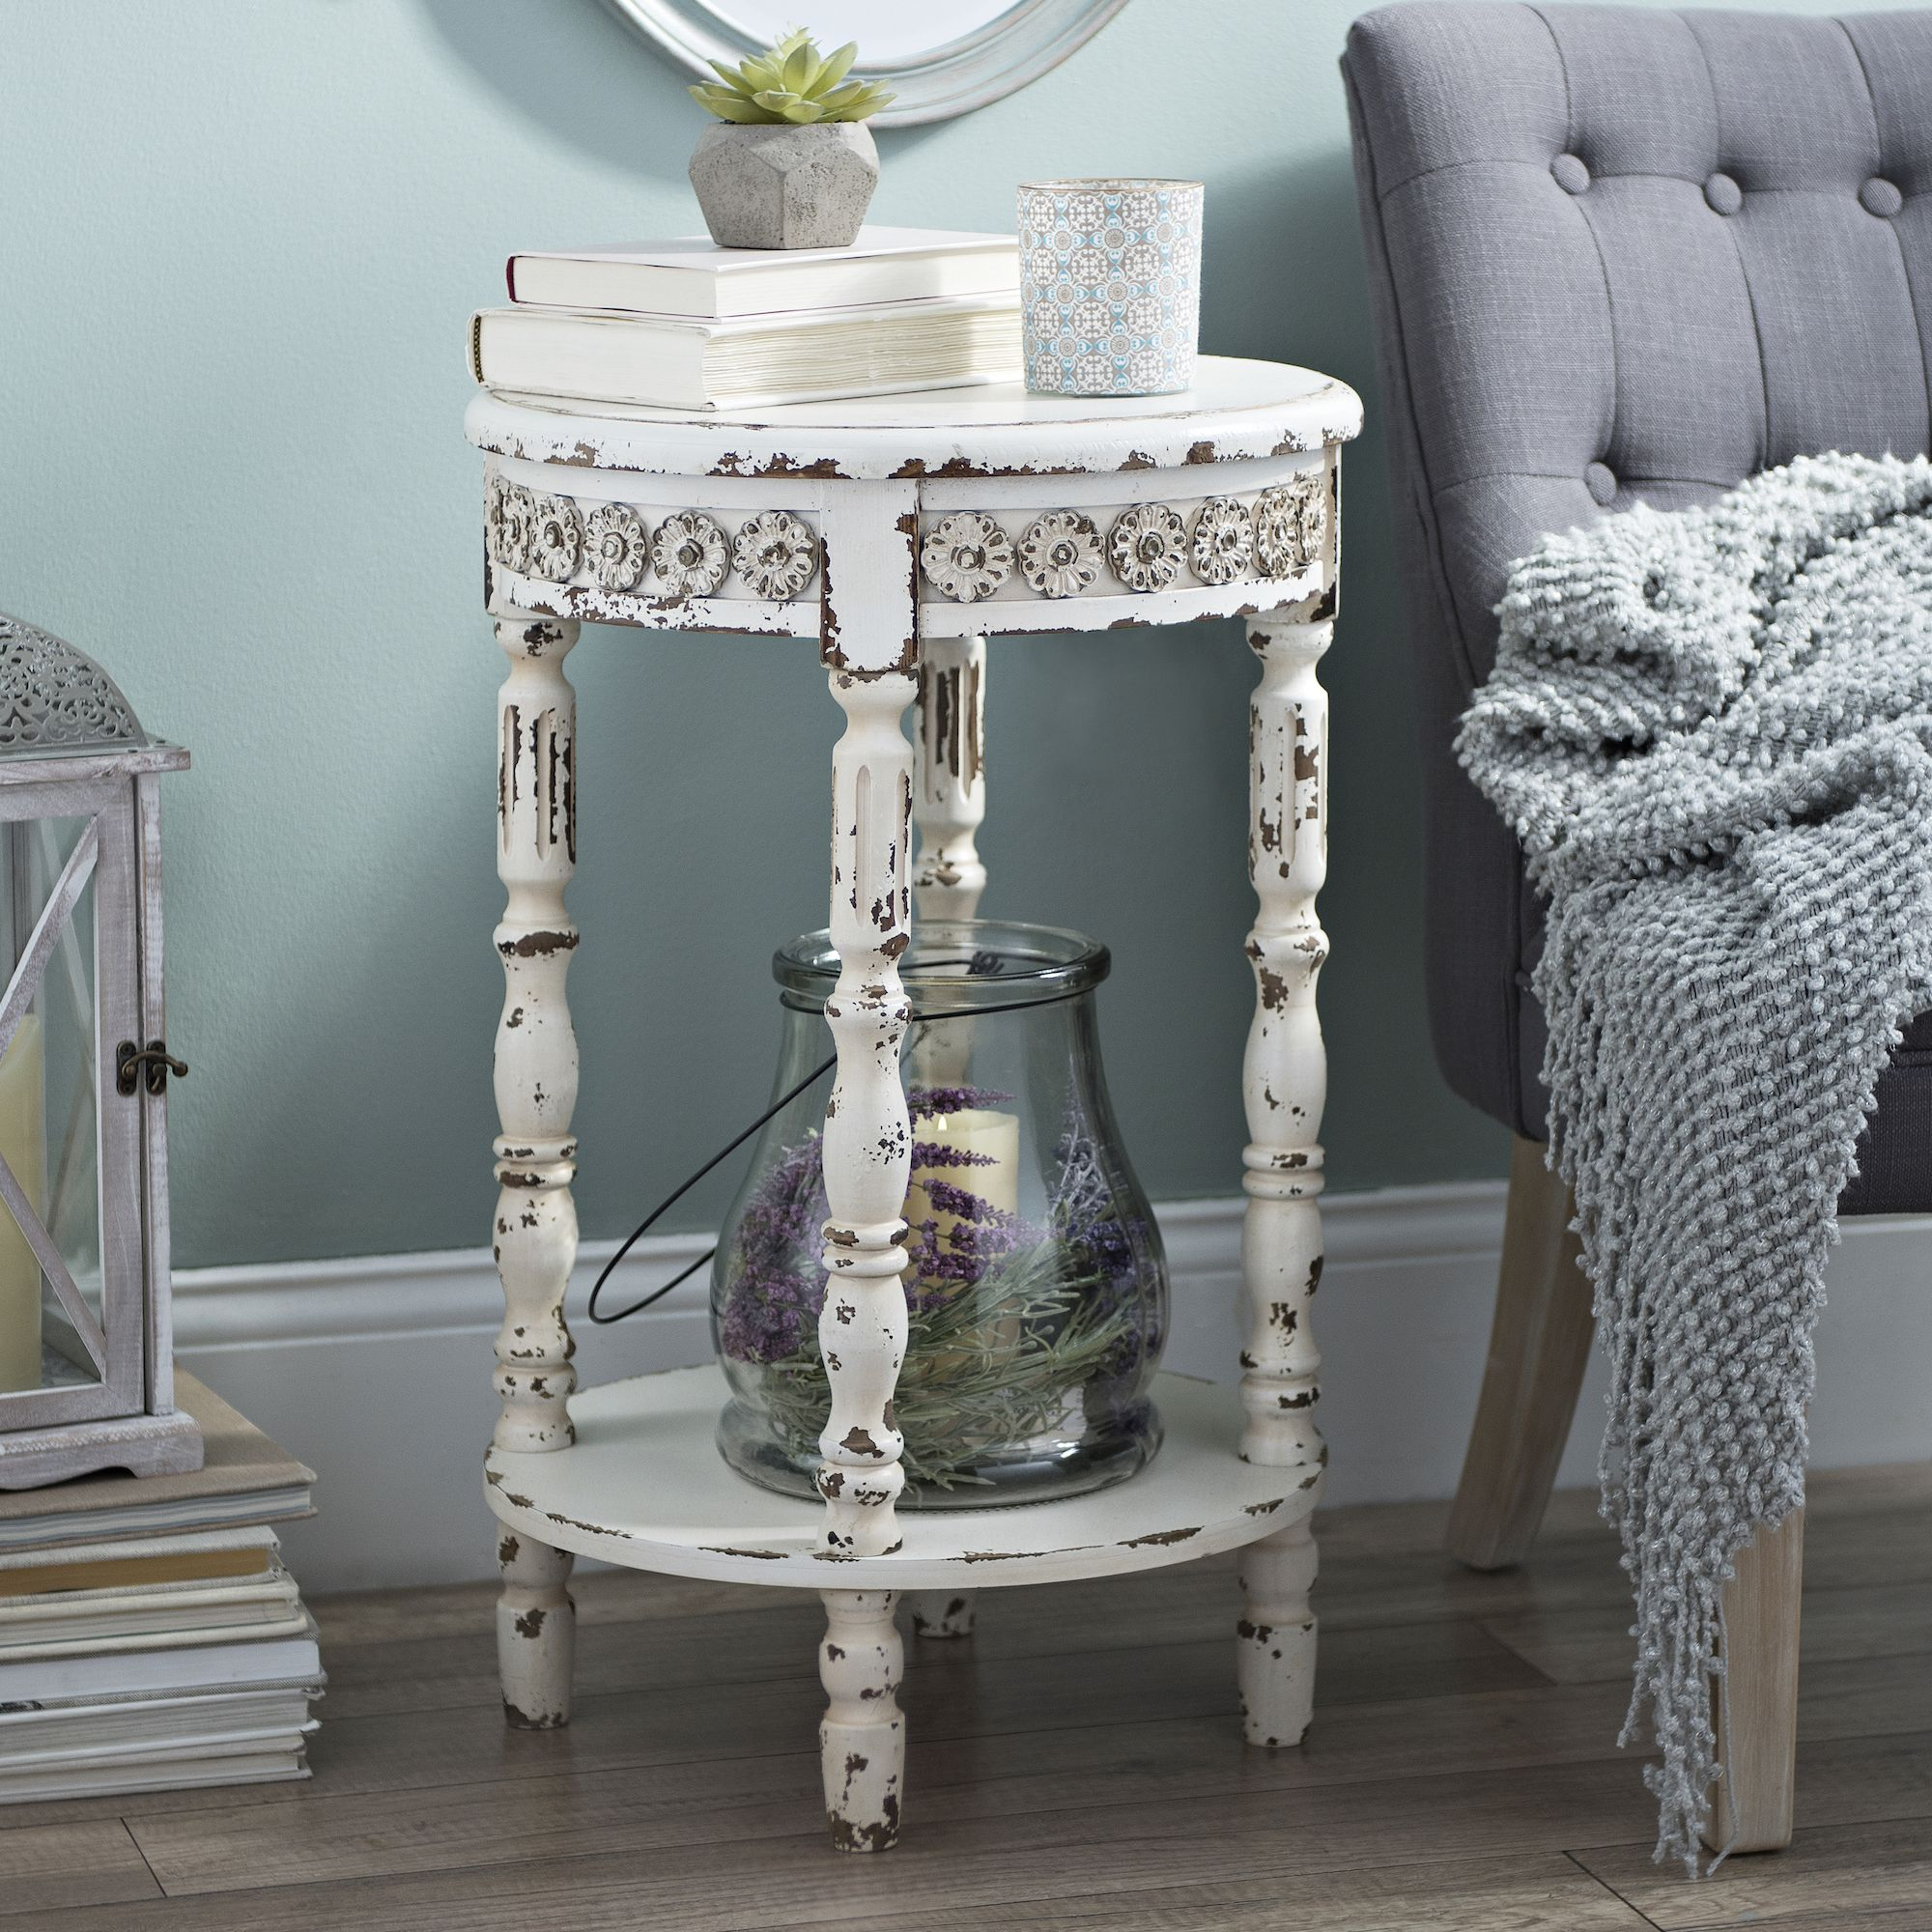 looking touch sophistication your simplistic decor vintage round accent table the white medallion for balance you kitchen diner outdoor grill work ethan allen coffee and end